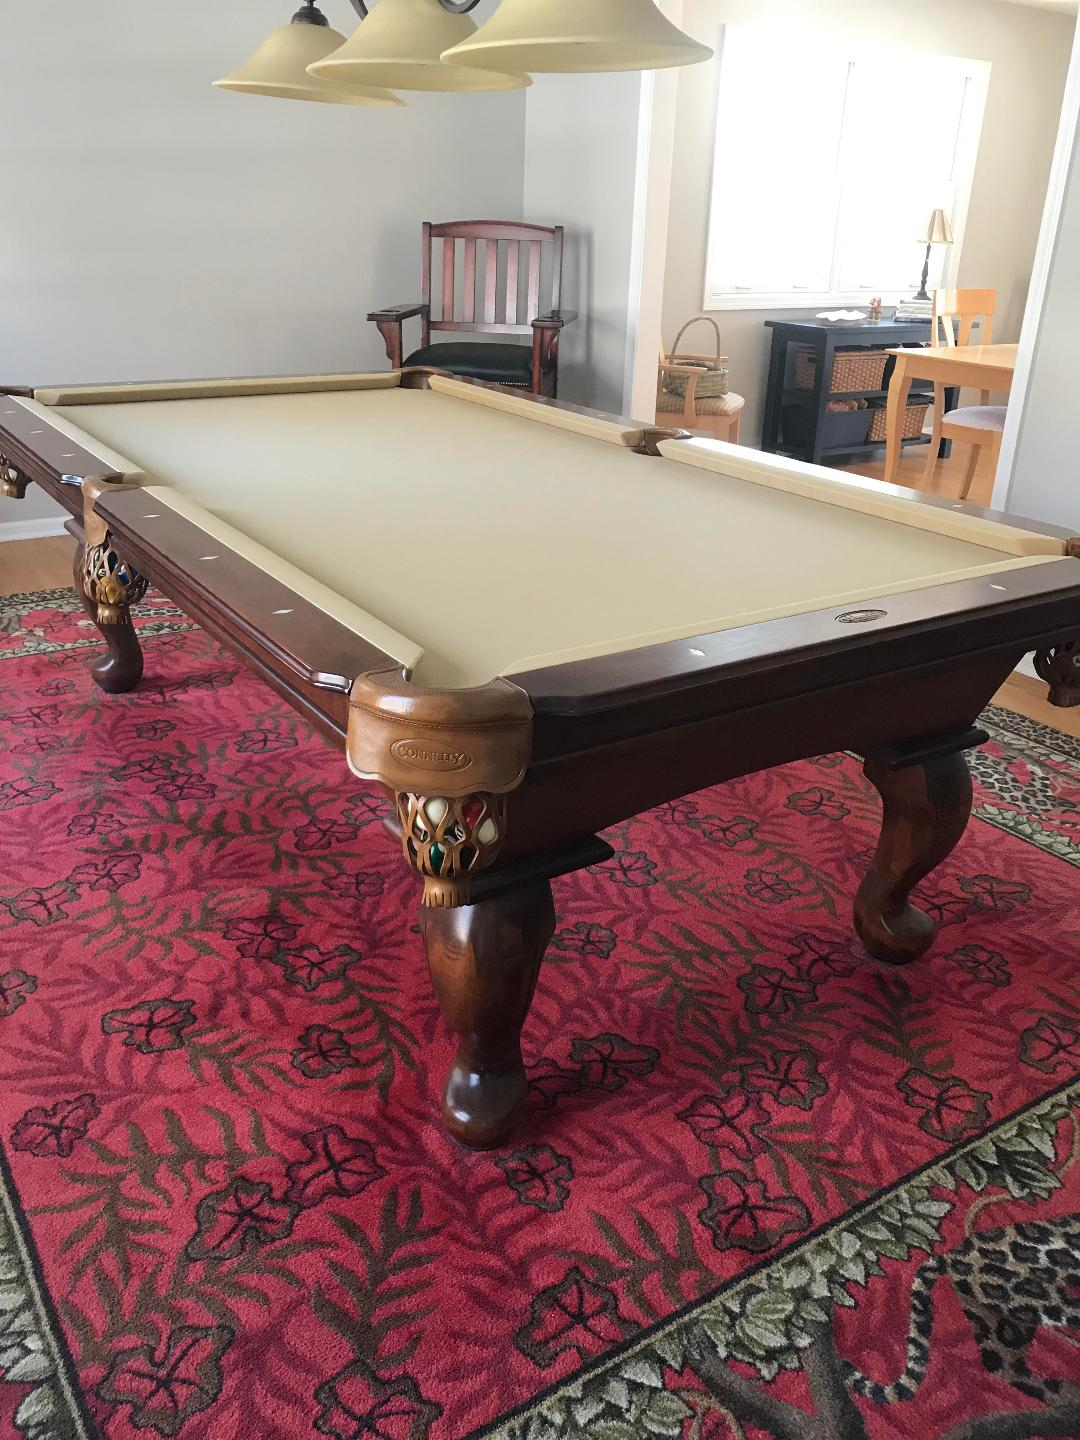 used-connelly-prescott-8-pool-table.jpg